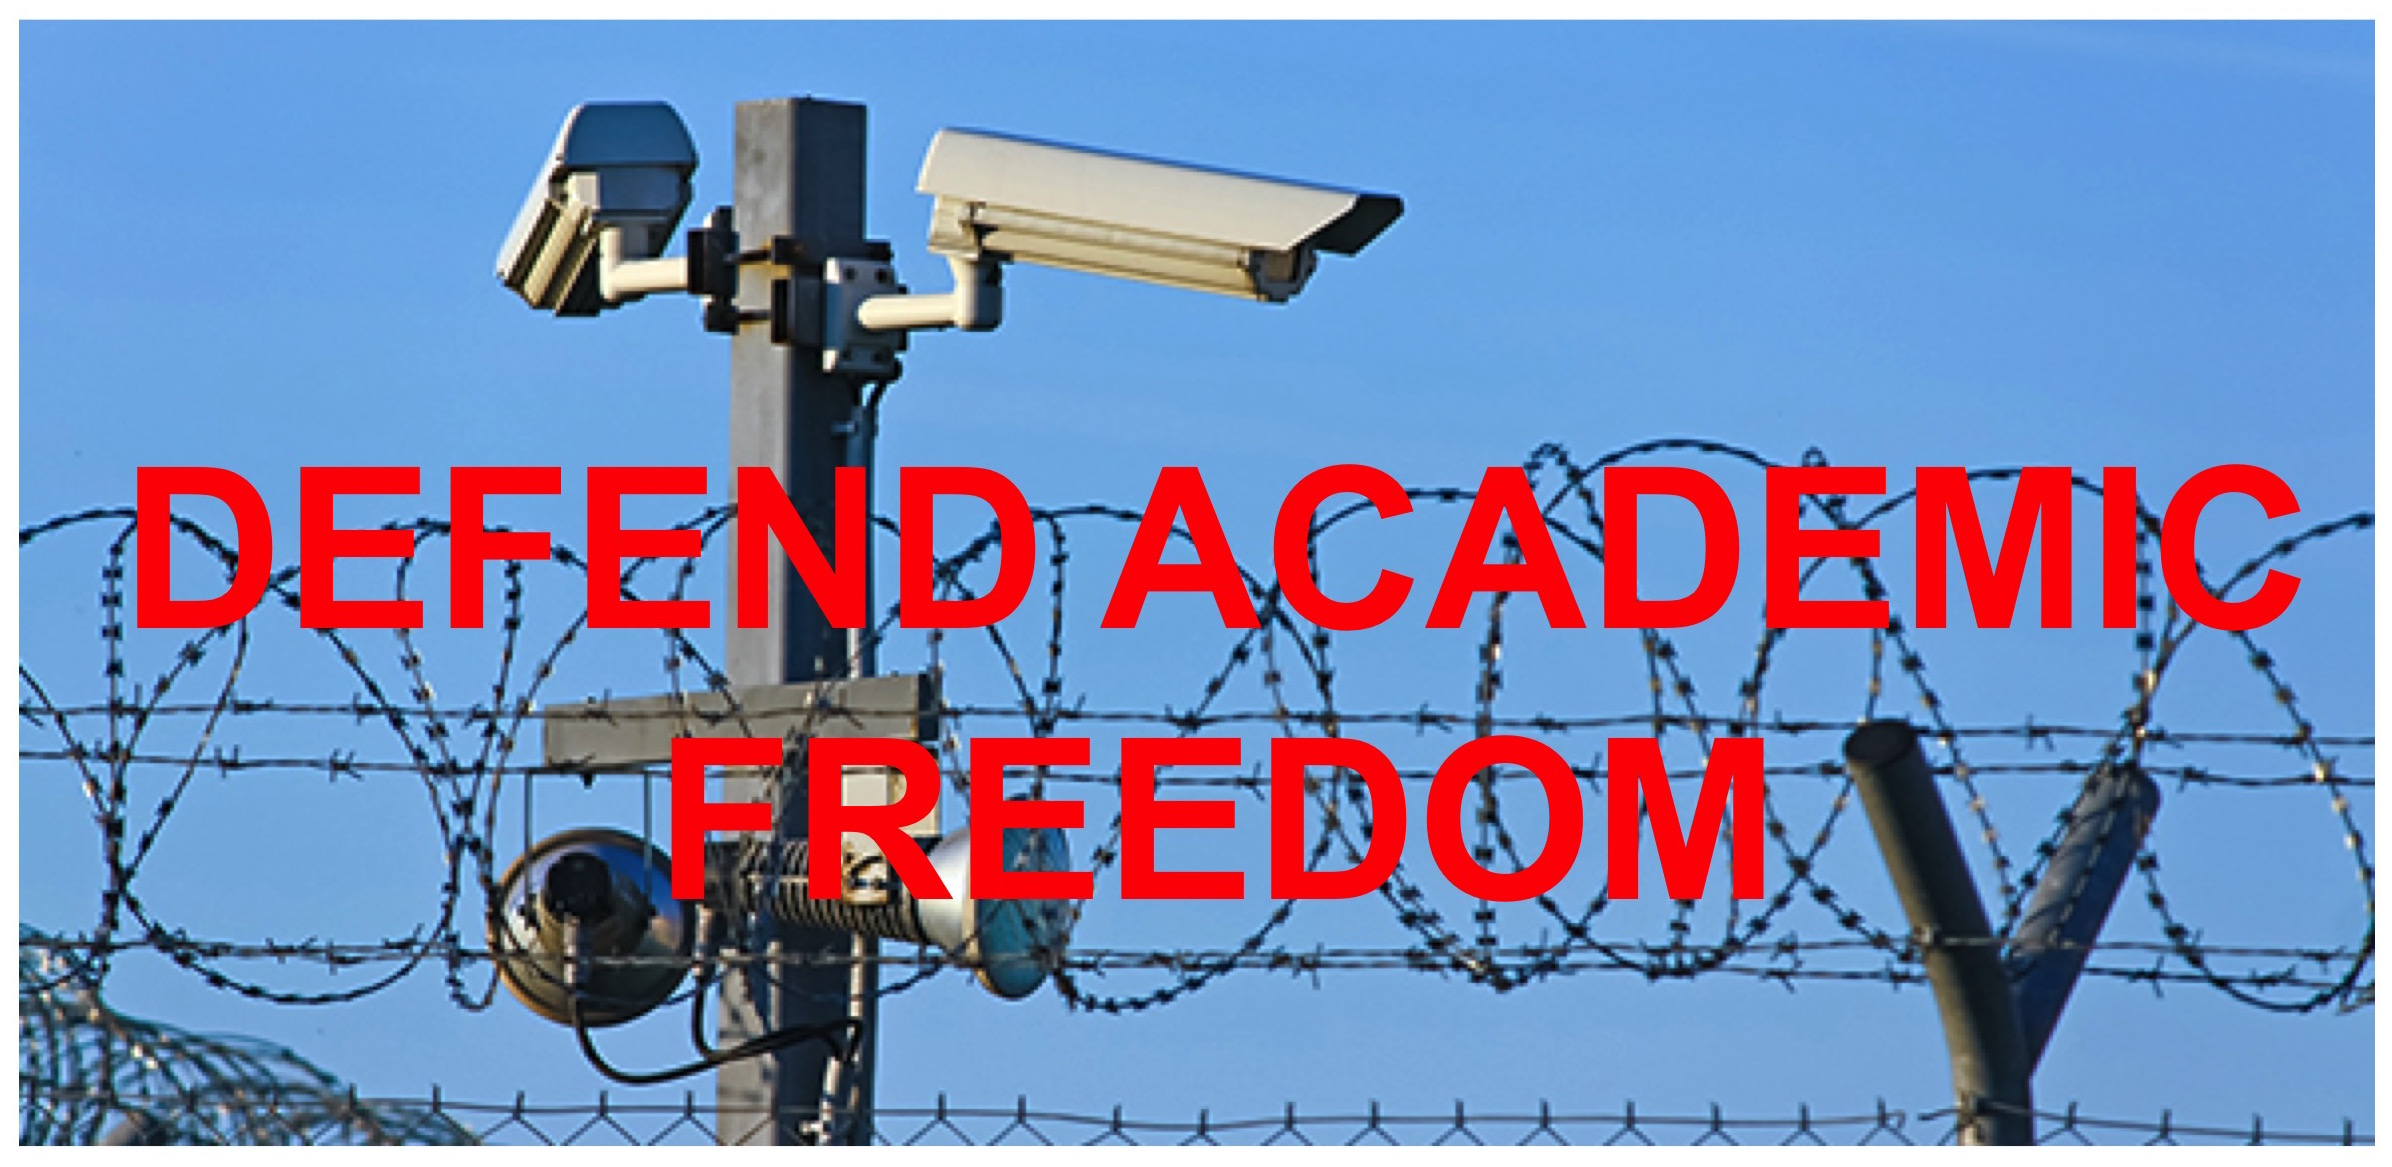 Defend_academic_freedom